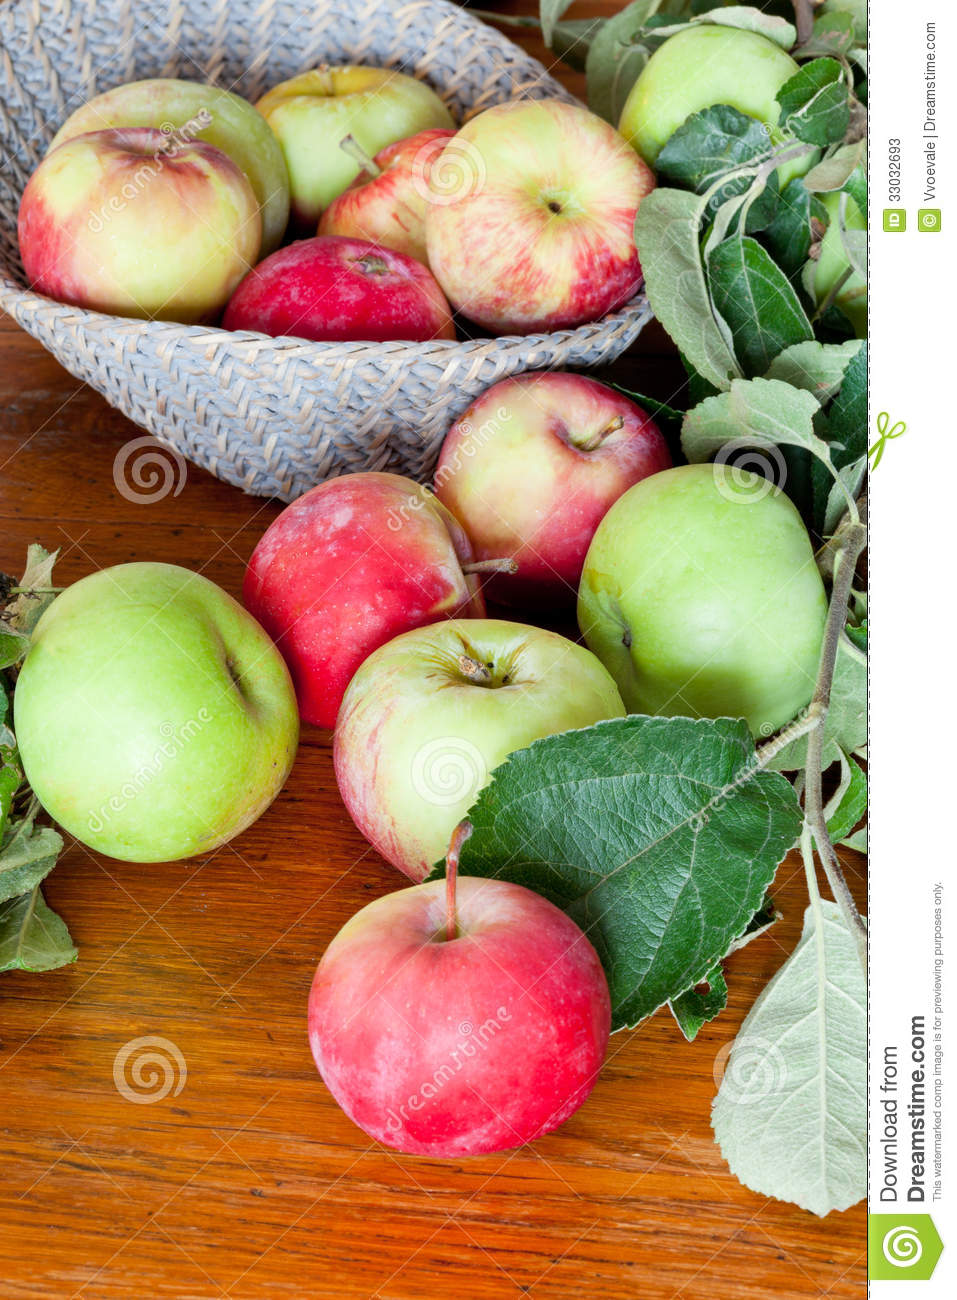 Fresh Summer Apples On Wooden Table Stock Photos - Image ...